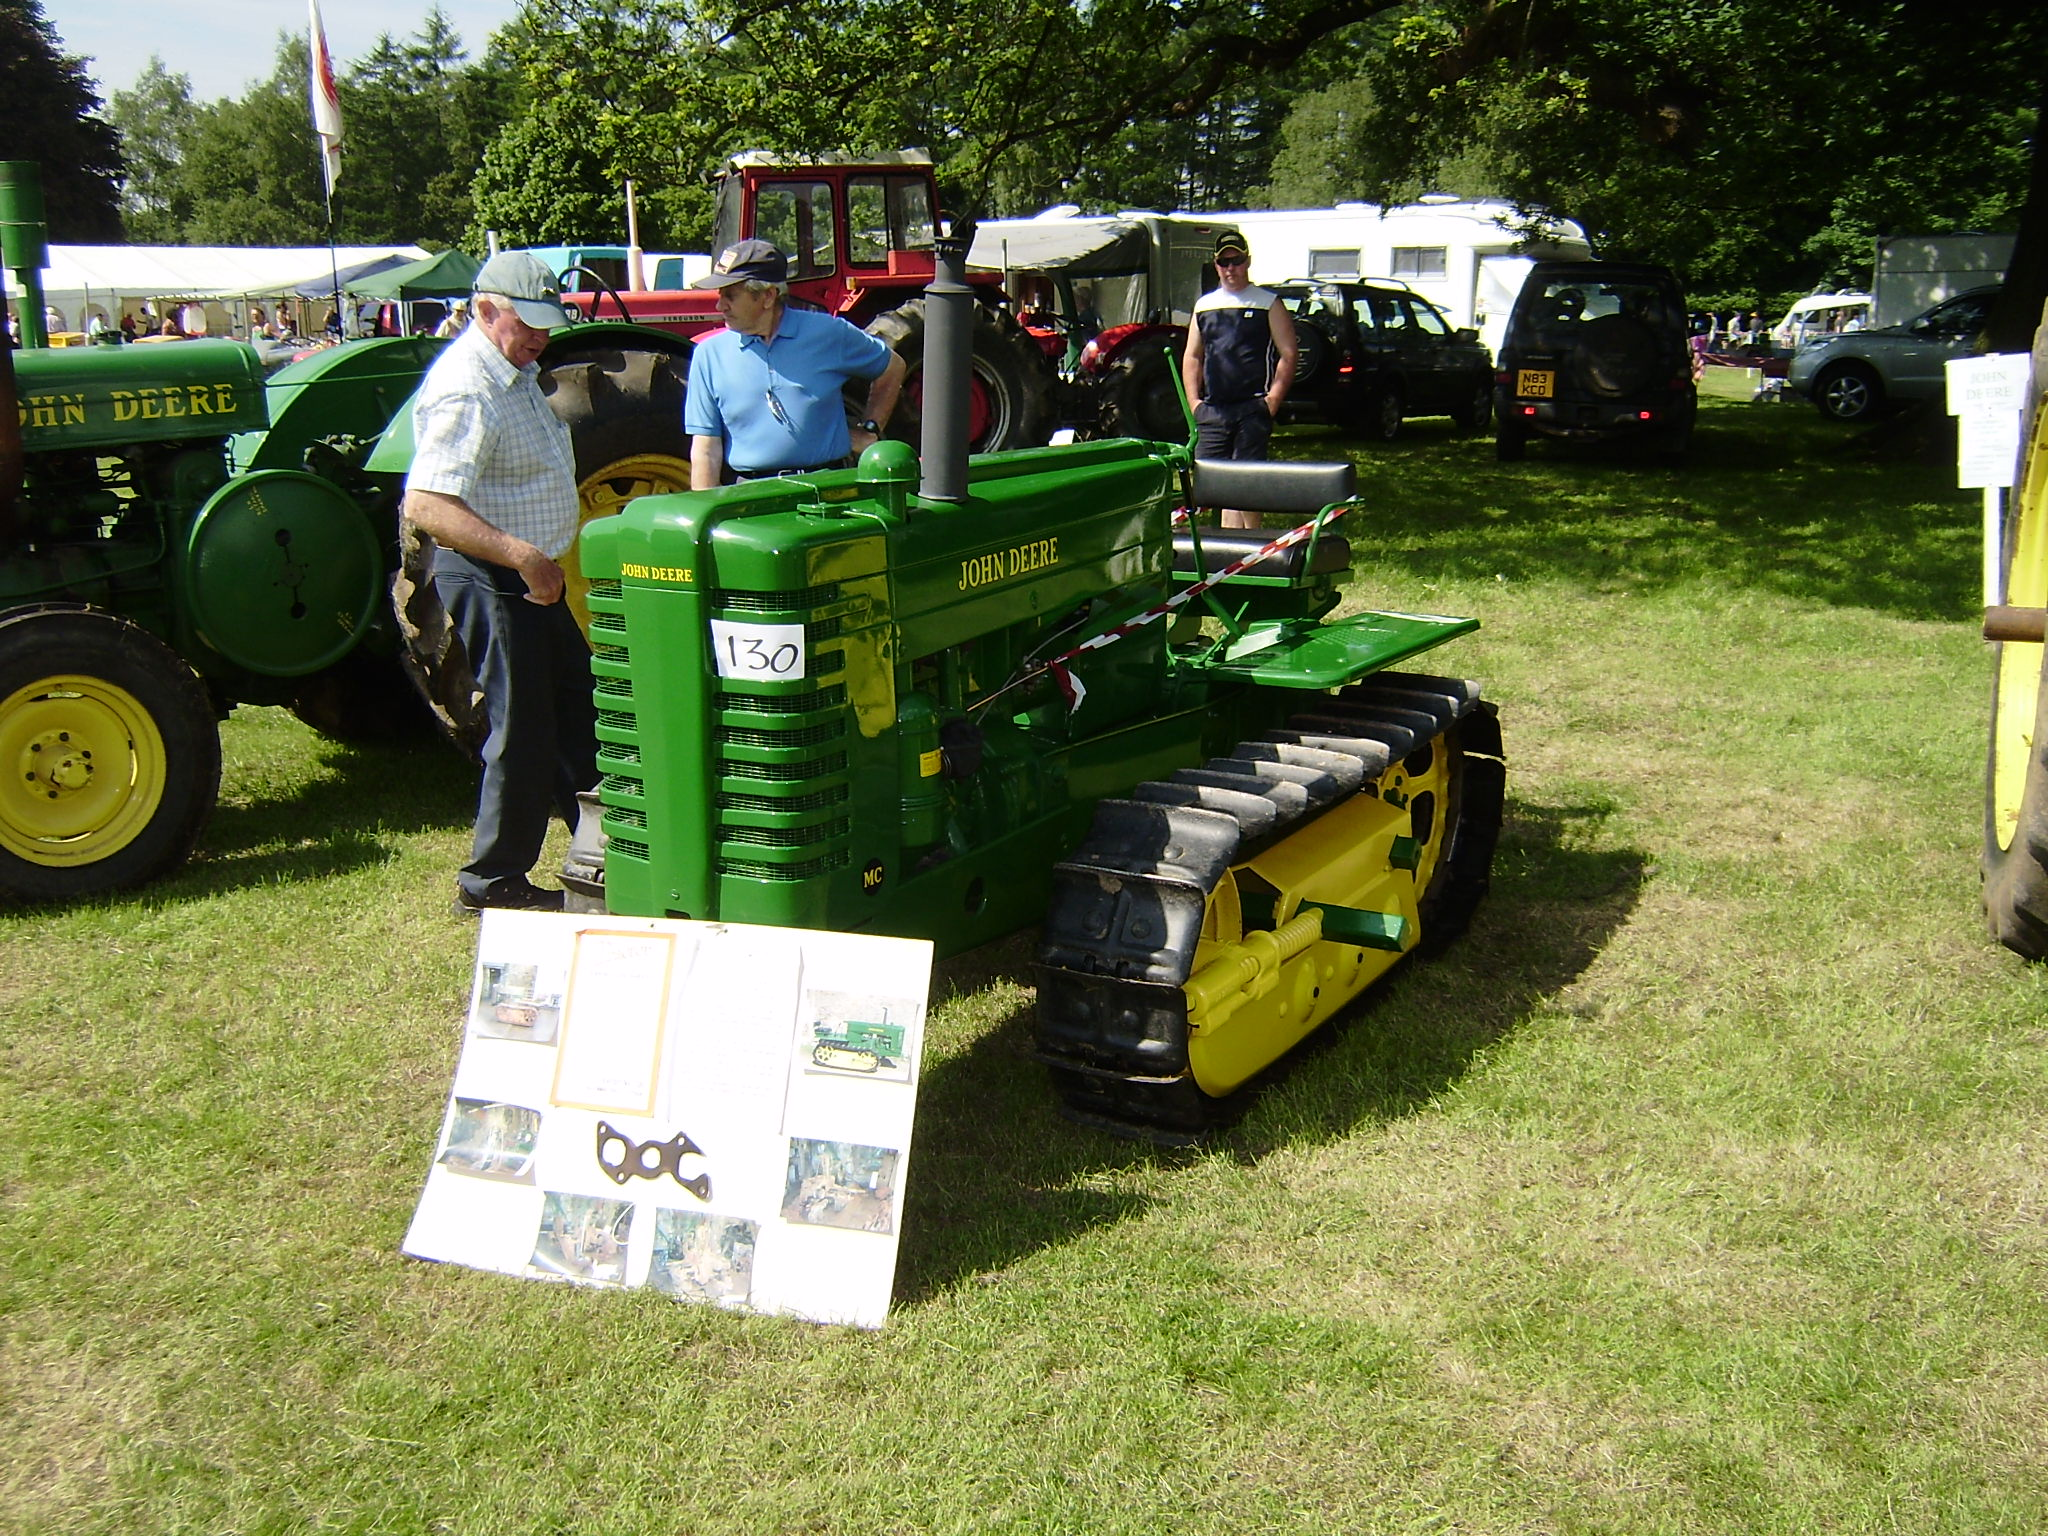 List Of John Deere Tractors Tractor Construction Plant Wiki 180 Wiring Diagram In Addition 445 Lawn